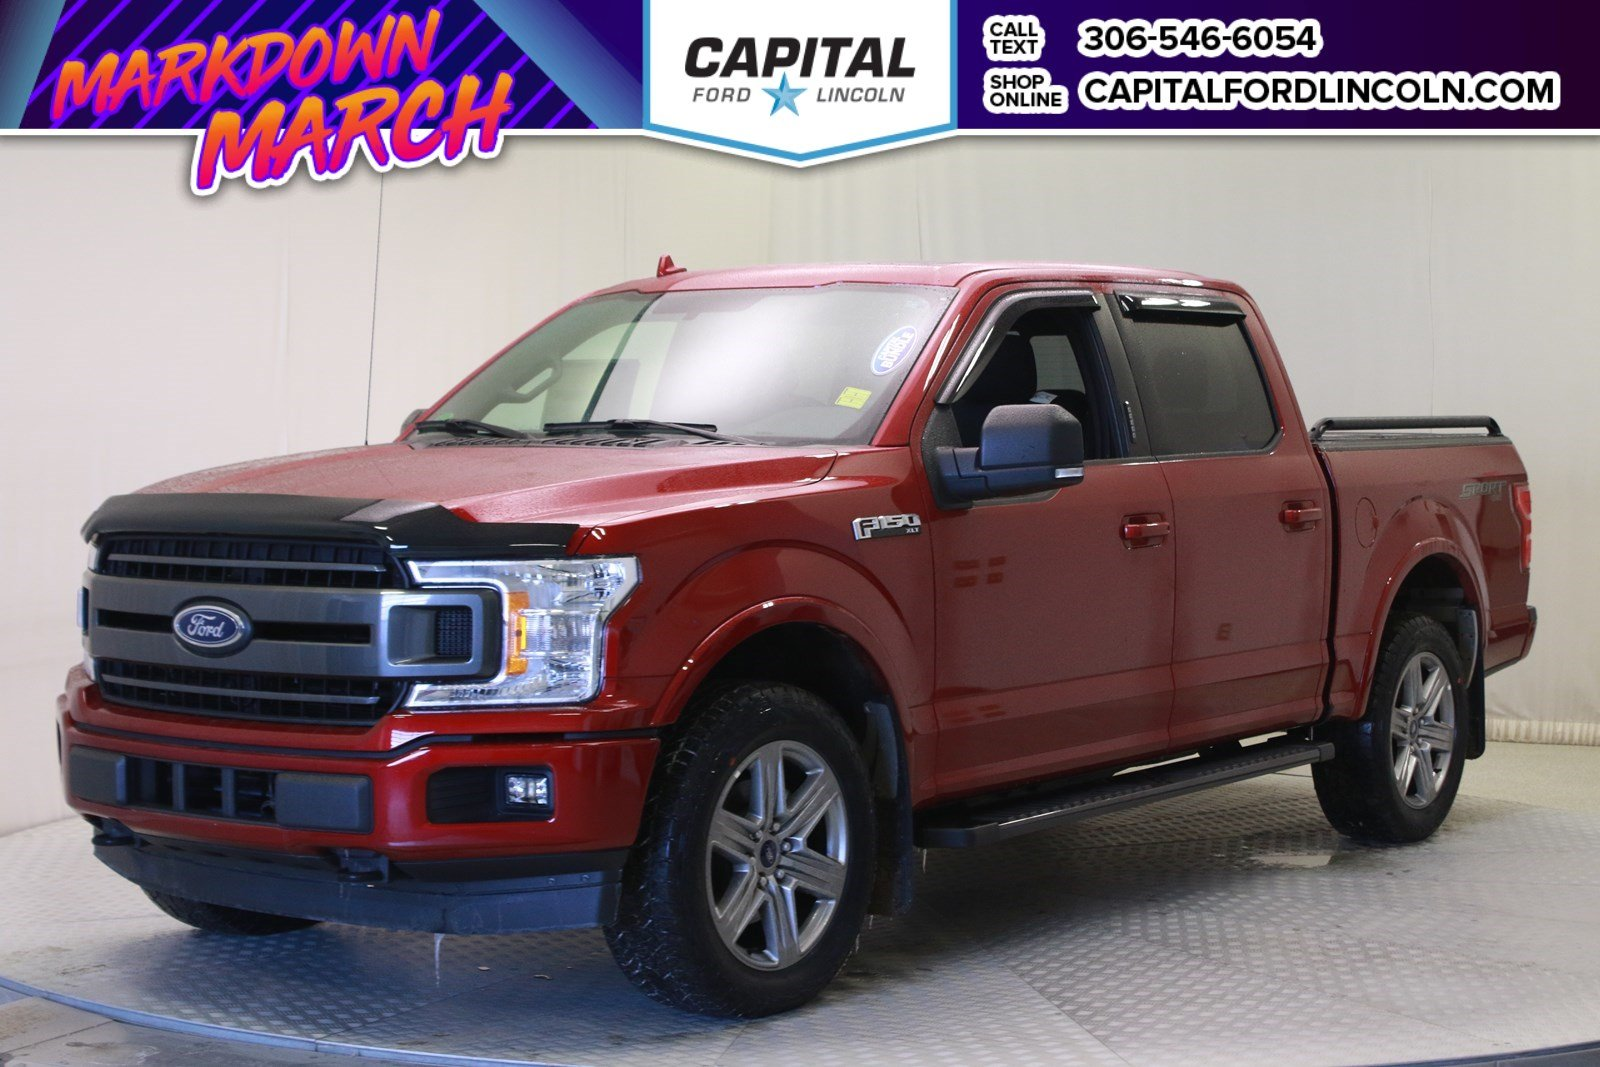 New 2018 Ford F-150 *CAPITAL CONCEPTS - BUNDLE TRUCK*